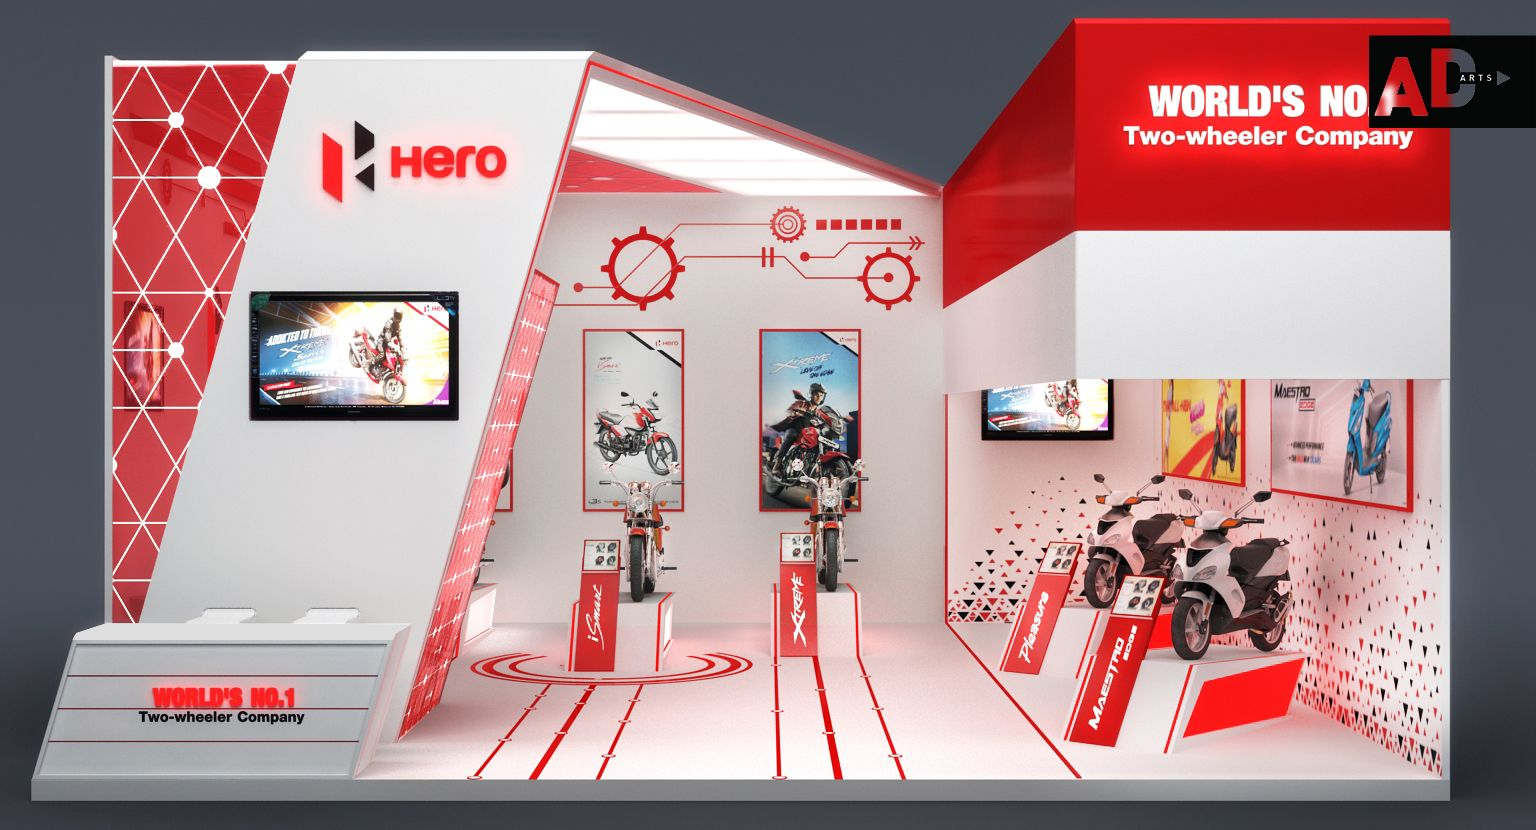 This Exhibition is designed for Hero Motocorp as they want to launch